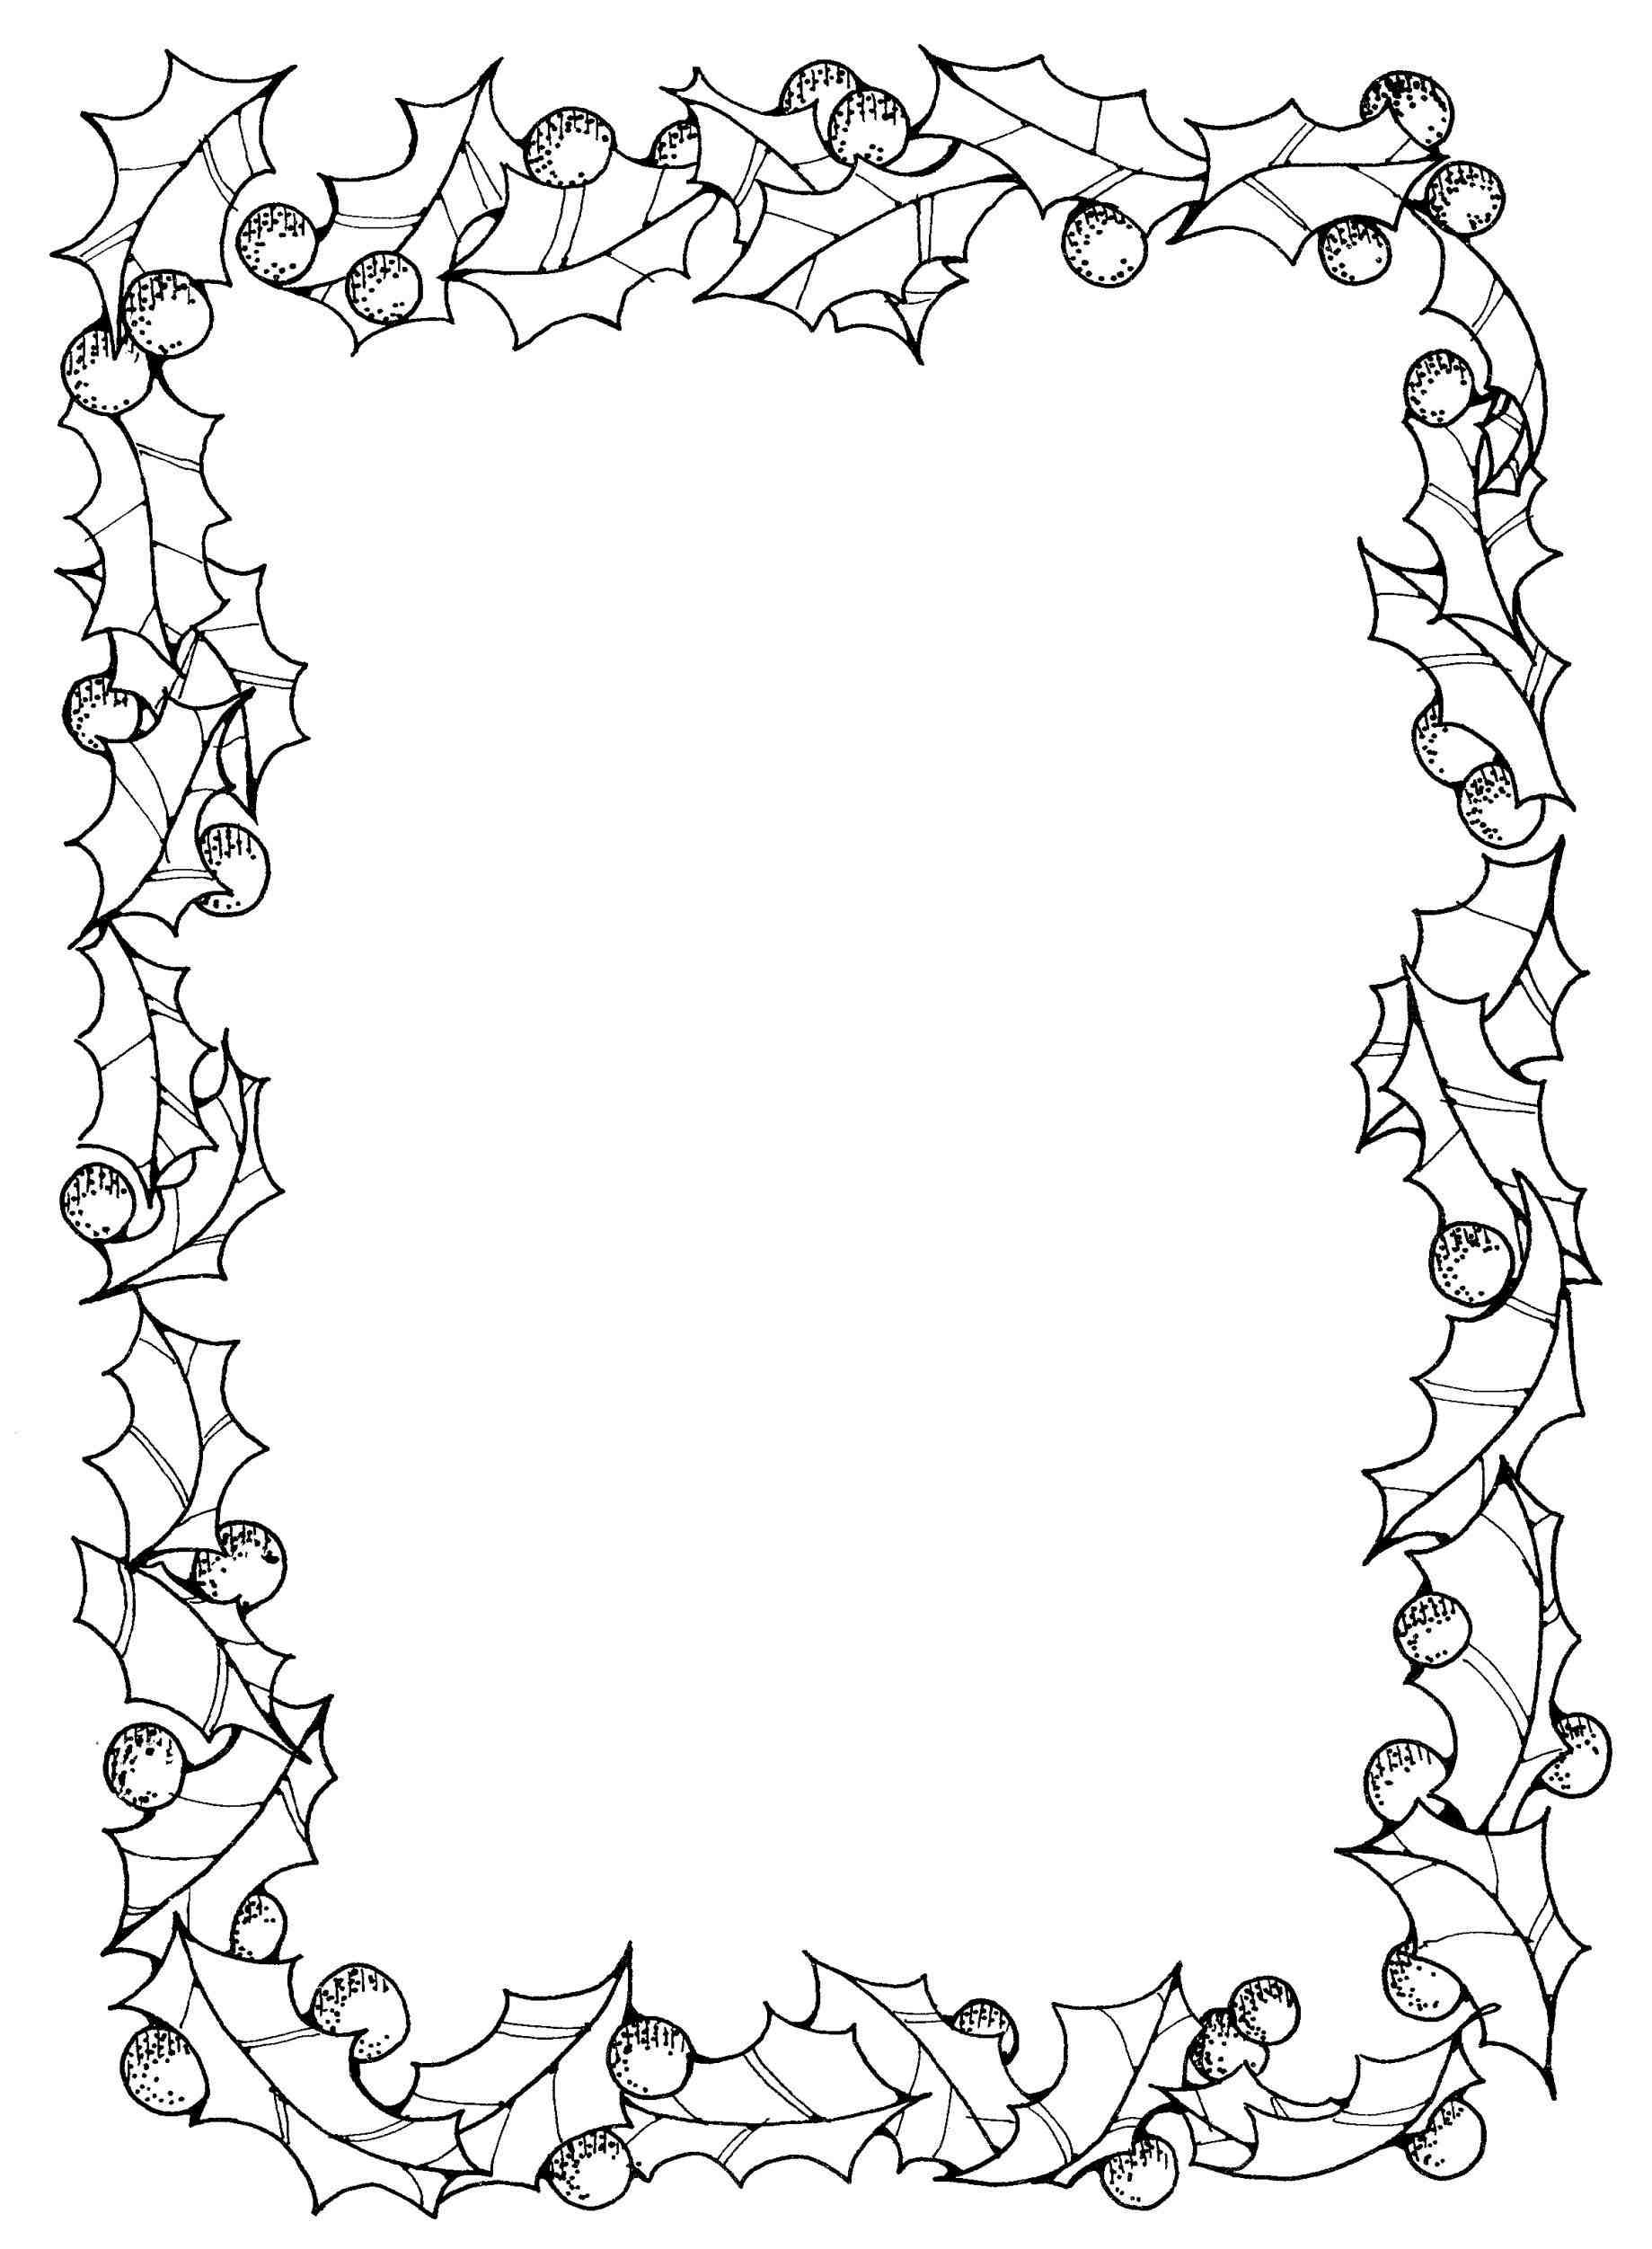 New christmas page borders black and white at temasistemi